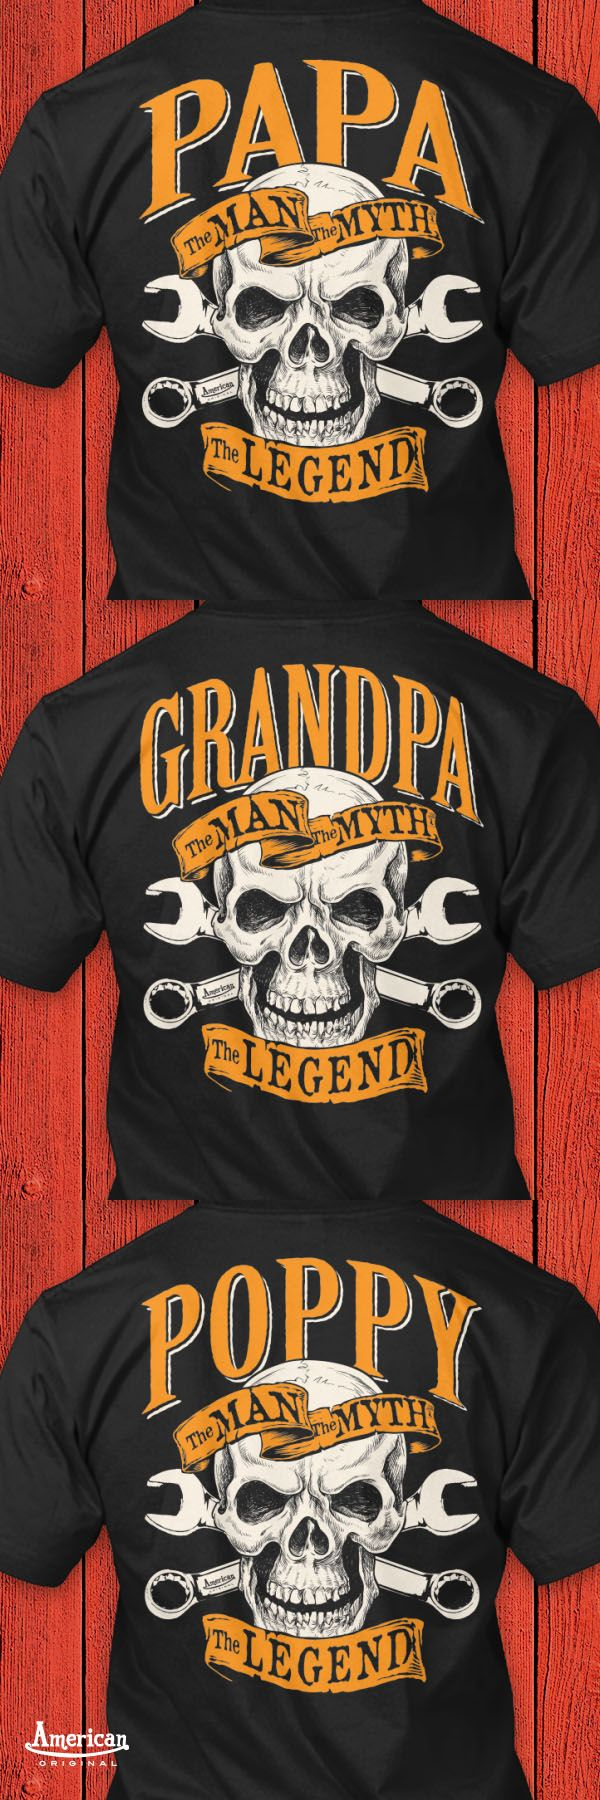 Order them right here http://teespring.com/stores/the-legend-2  A sure hit for any Harley riding, wrench spinning, hot rod building mechanic dad or grandfather. Perfect if he's hanging out in the man cave or riding with friends he'll be loving that you call him the legend. We have Papa, Dad, PawPaw, Pops, Pop Pop, Poppy, PaPaw, Grandpa, Daddy, Pappy, Pop, Pa, Poppa, Opa, Grampy and Gramps.  Order here http://teespring.com/stores/the-legend-2?var=pint_t Awesome for birthday, anniversary or…